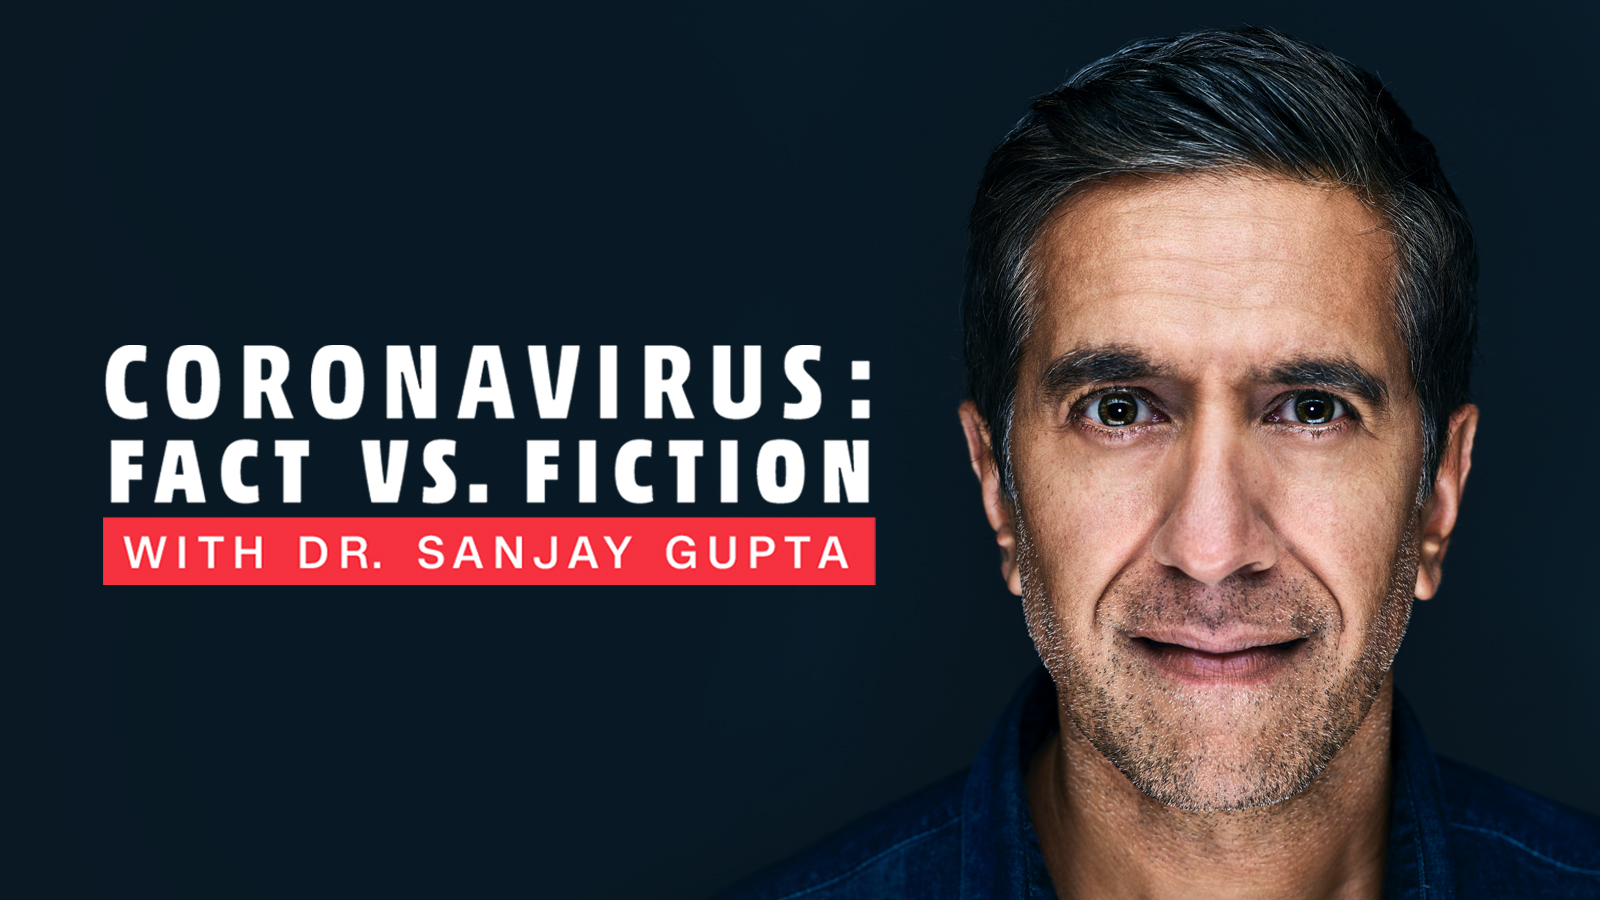 Profiting from a pandemic: Dr. Sanjay Gupta's coronavirus podcast for April 8